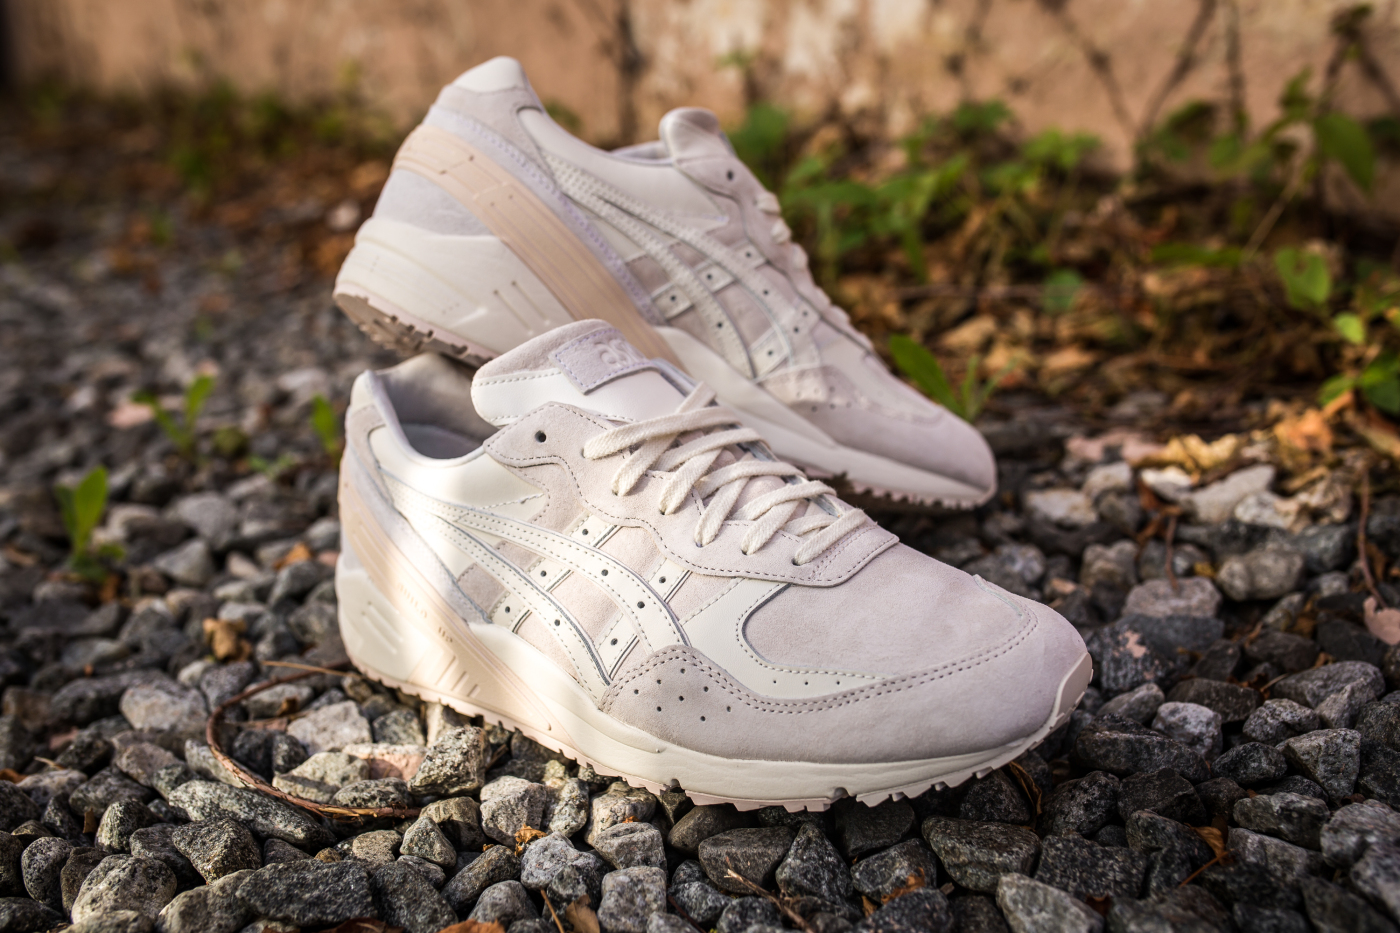 new concept 561e1 88266 The Asics Gel-Sight 'Blush' Drops at Midnight - WearTesters